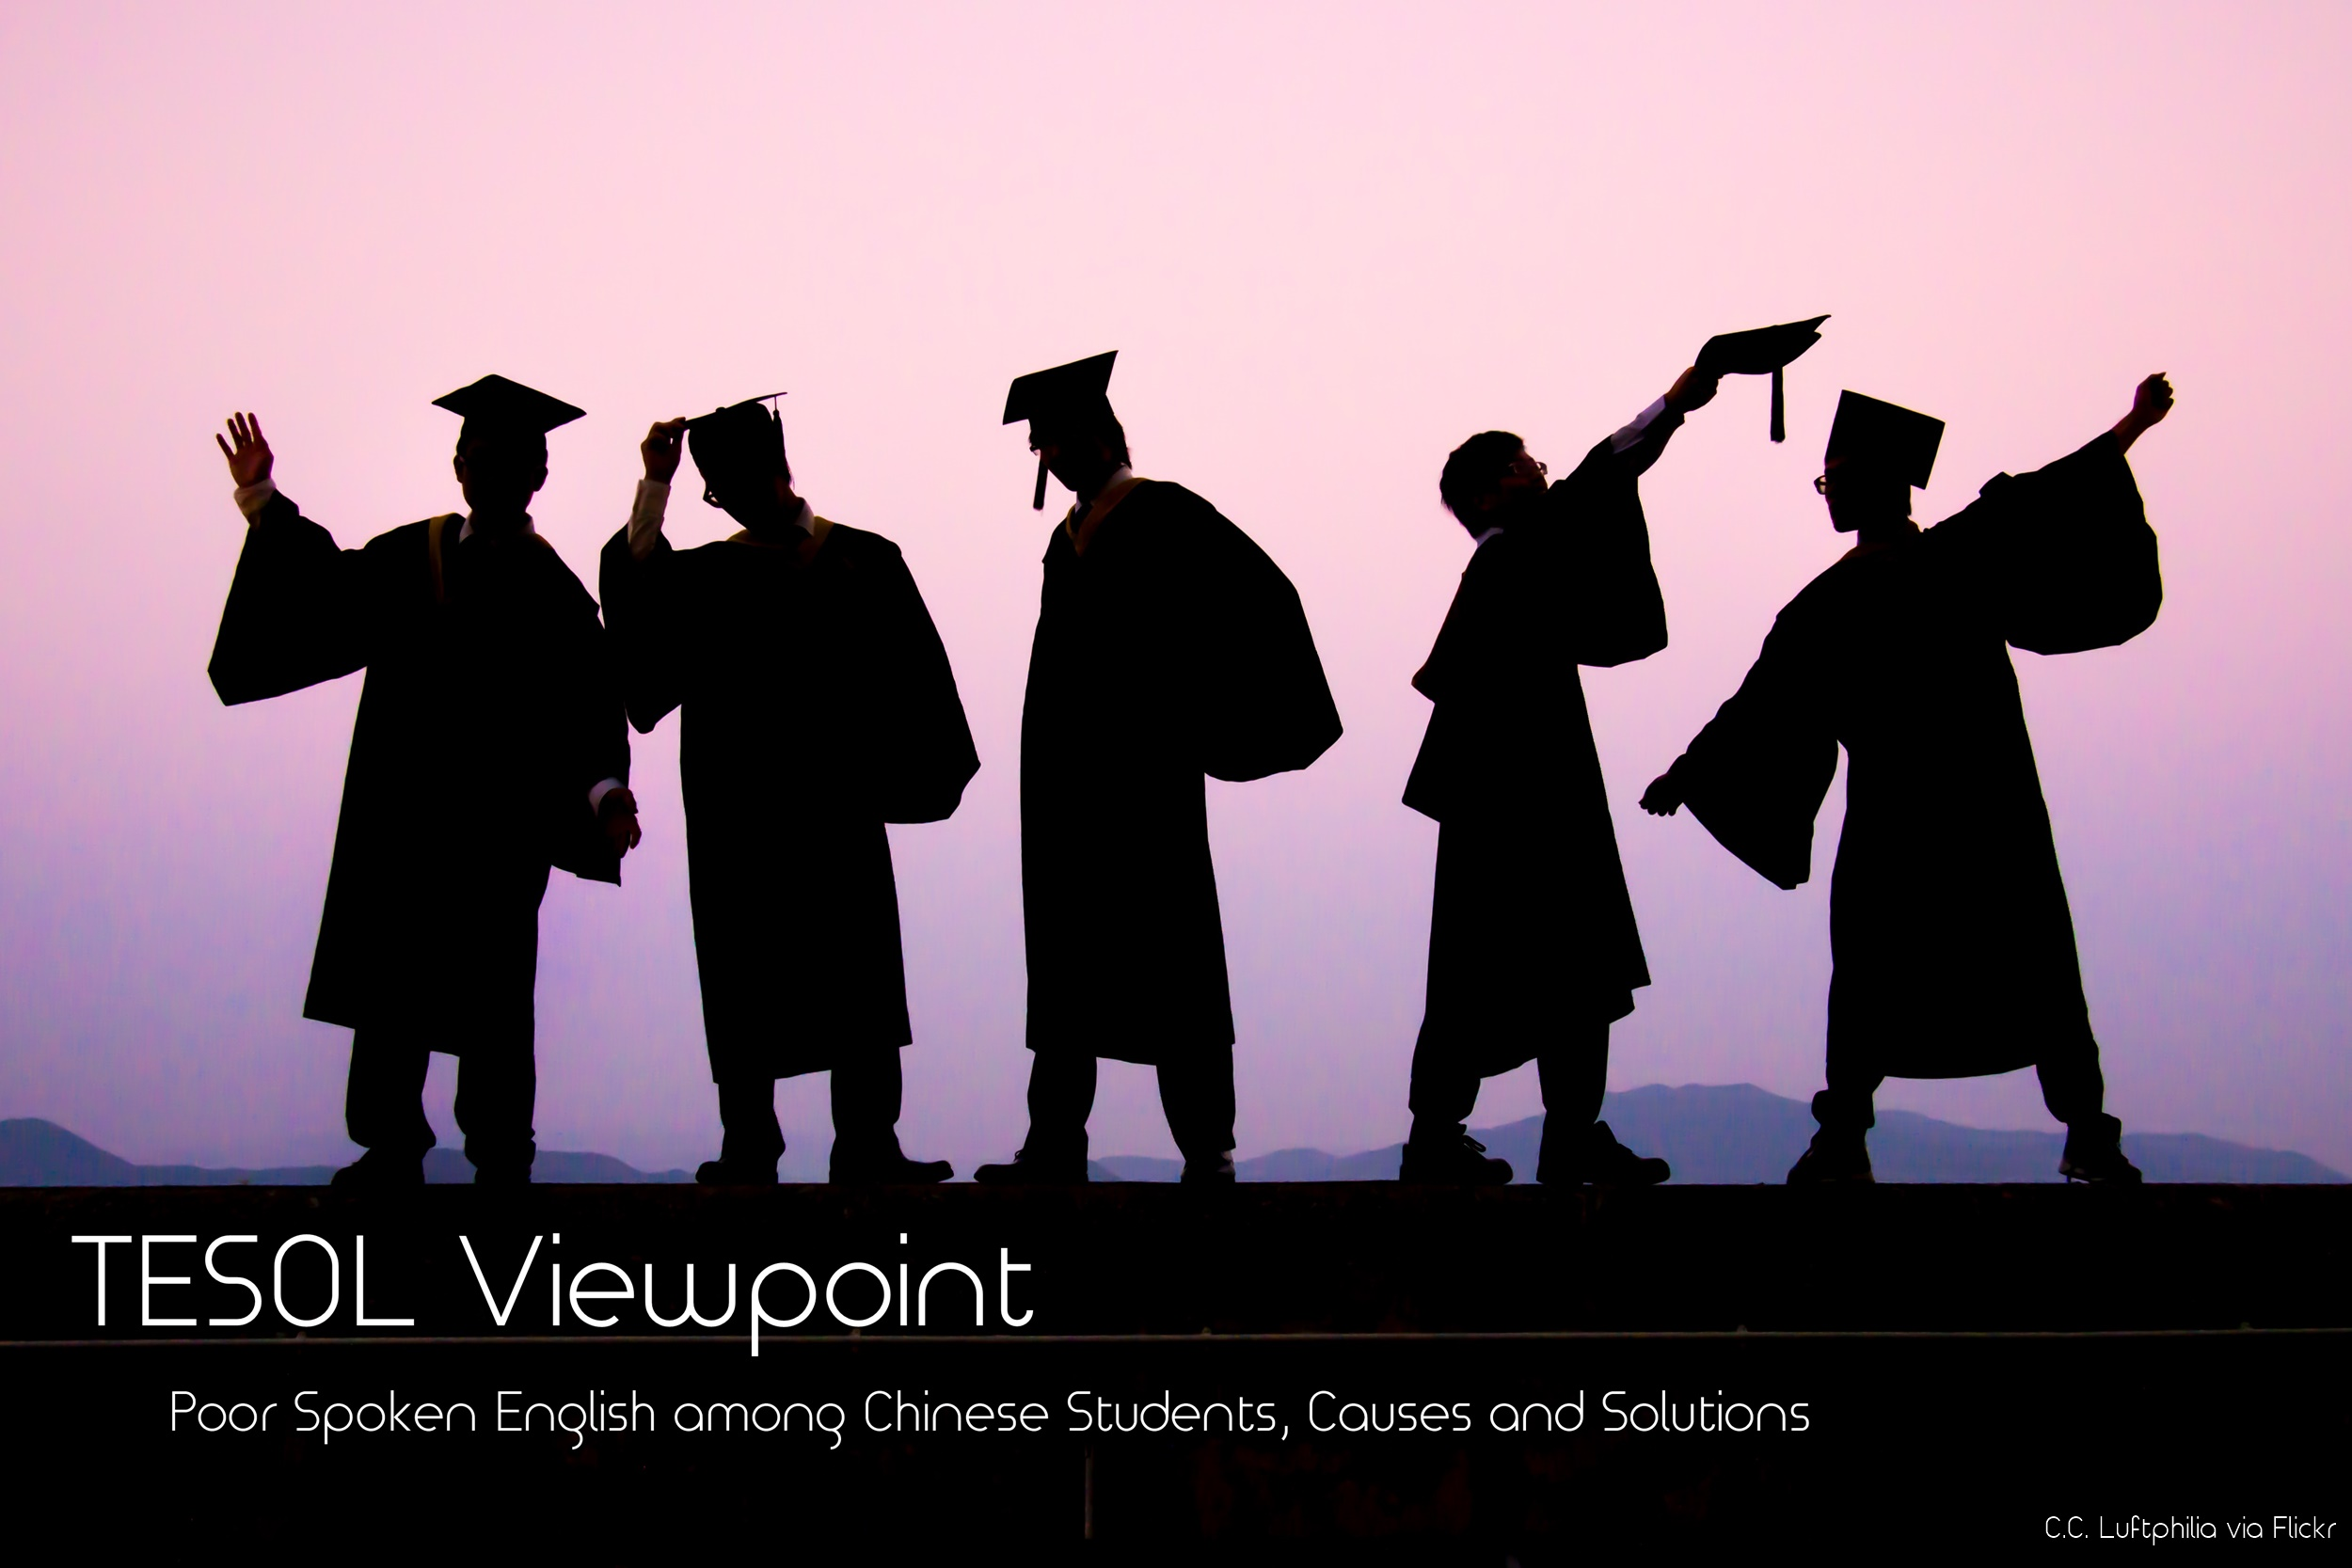 Poor Spoken English among Chinese Students, Causes and Solutions